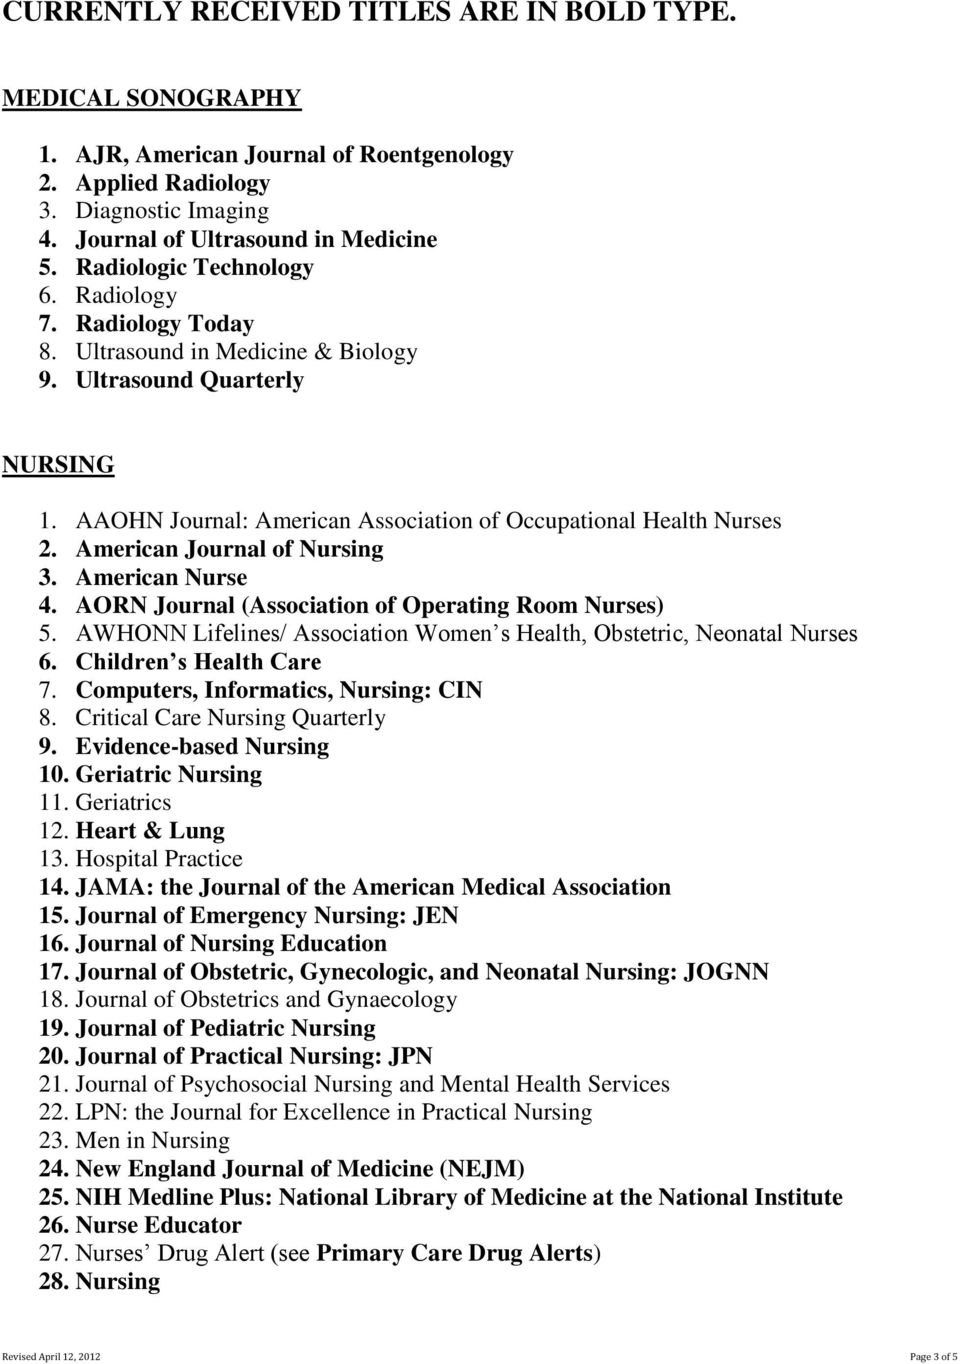 AORN Journal (Association of Operating Room Nurses) 5. AWHONN Lifelines/ Association Women s Health, Obstetric, Neonatal Nurses 6. Children s Health Care 7. Computers, Informatics, Nursing: CIN 8.